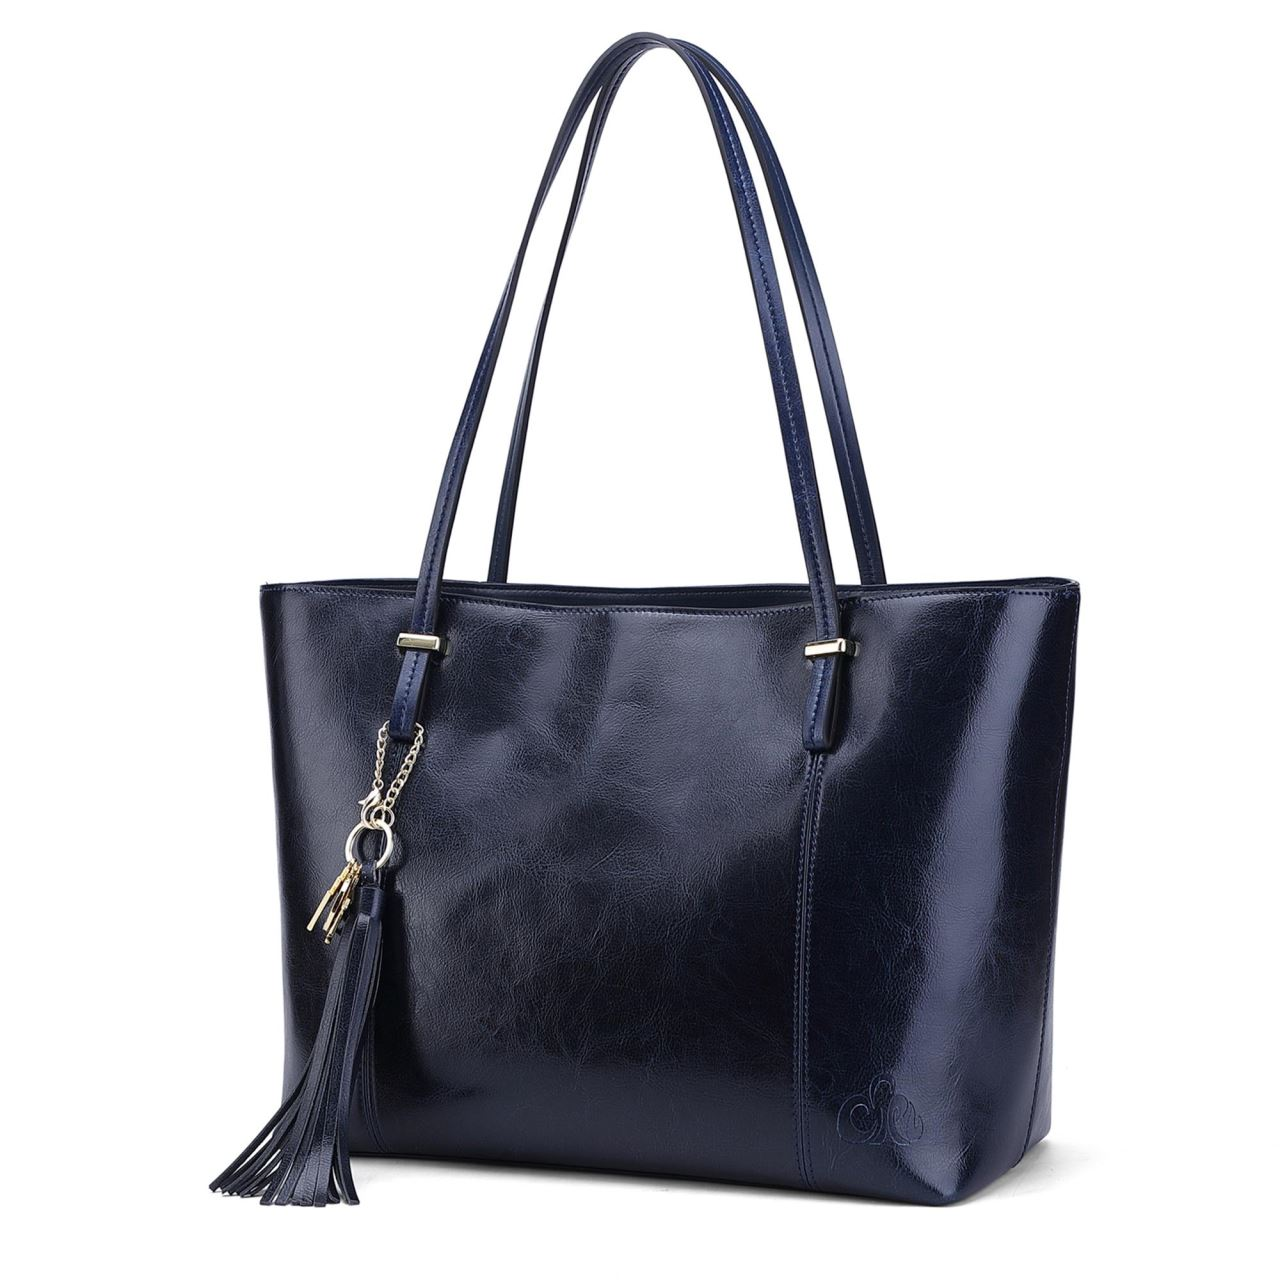 Navy Blue Leather Large Tote Bag